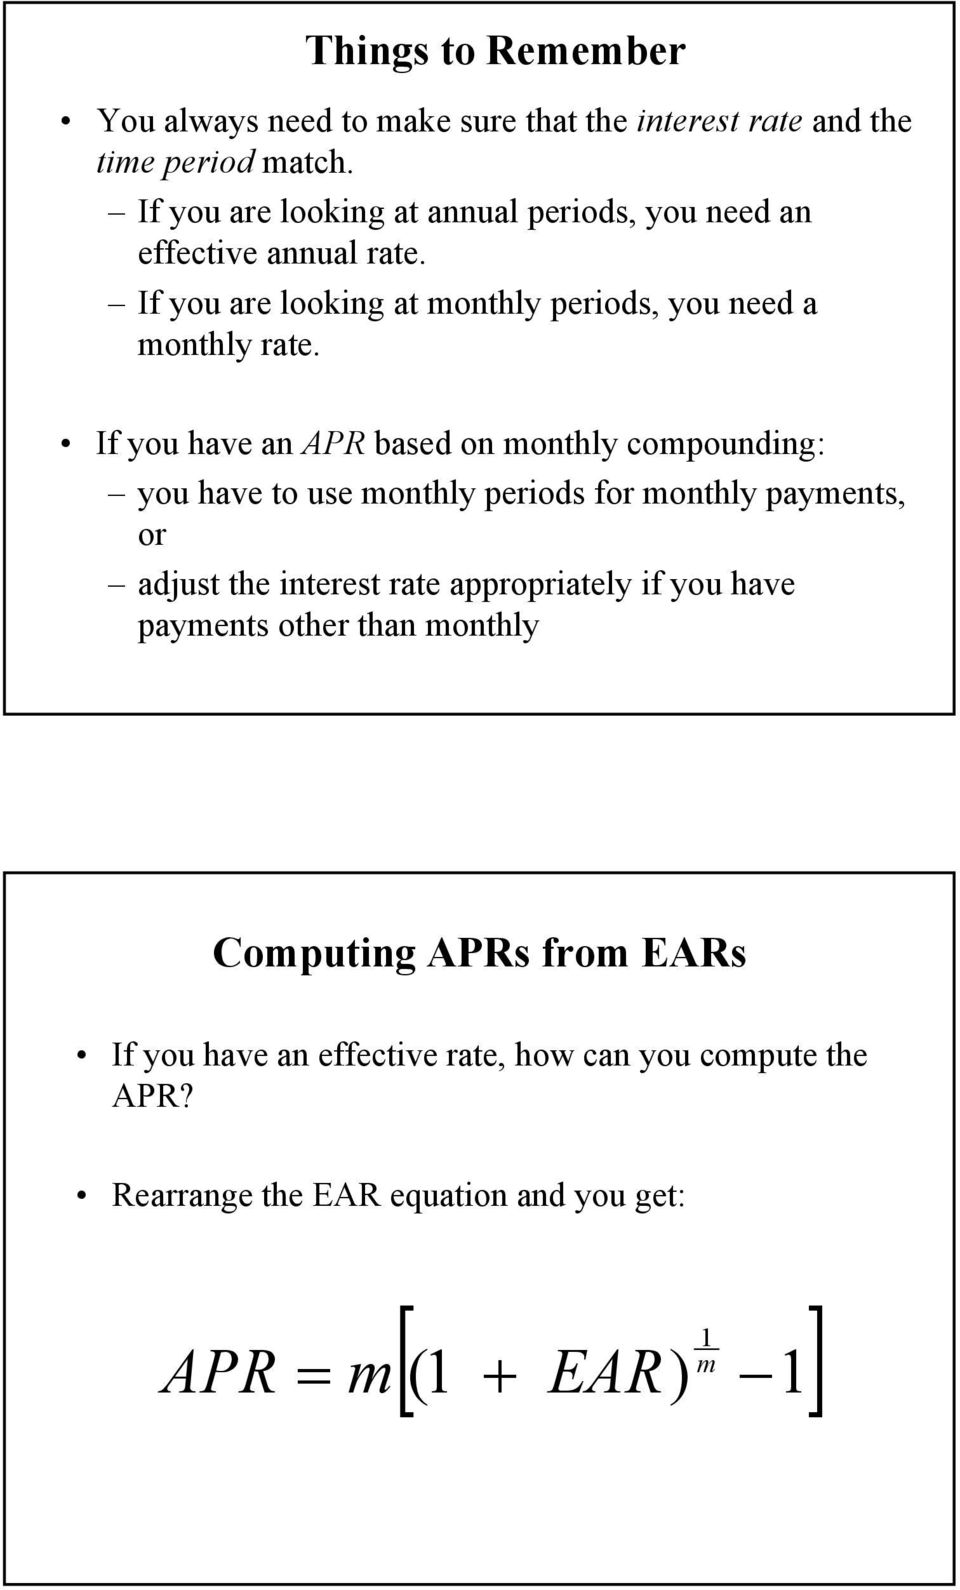 If you have an APR based on monthly compounding: you have to use monthly periods for monthly payments, or adjust the interest rate